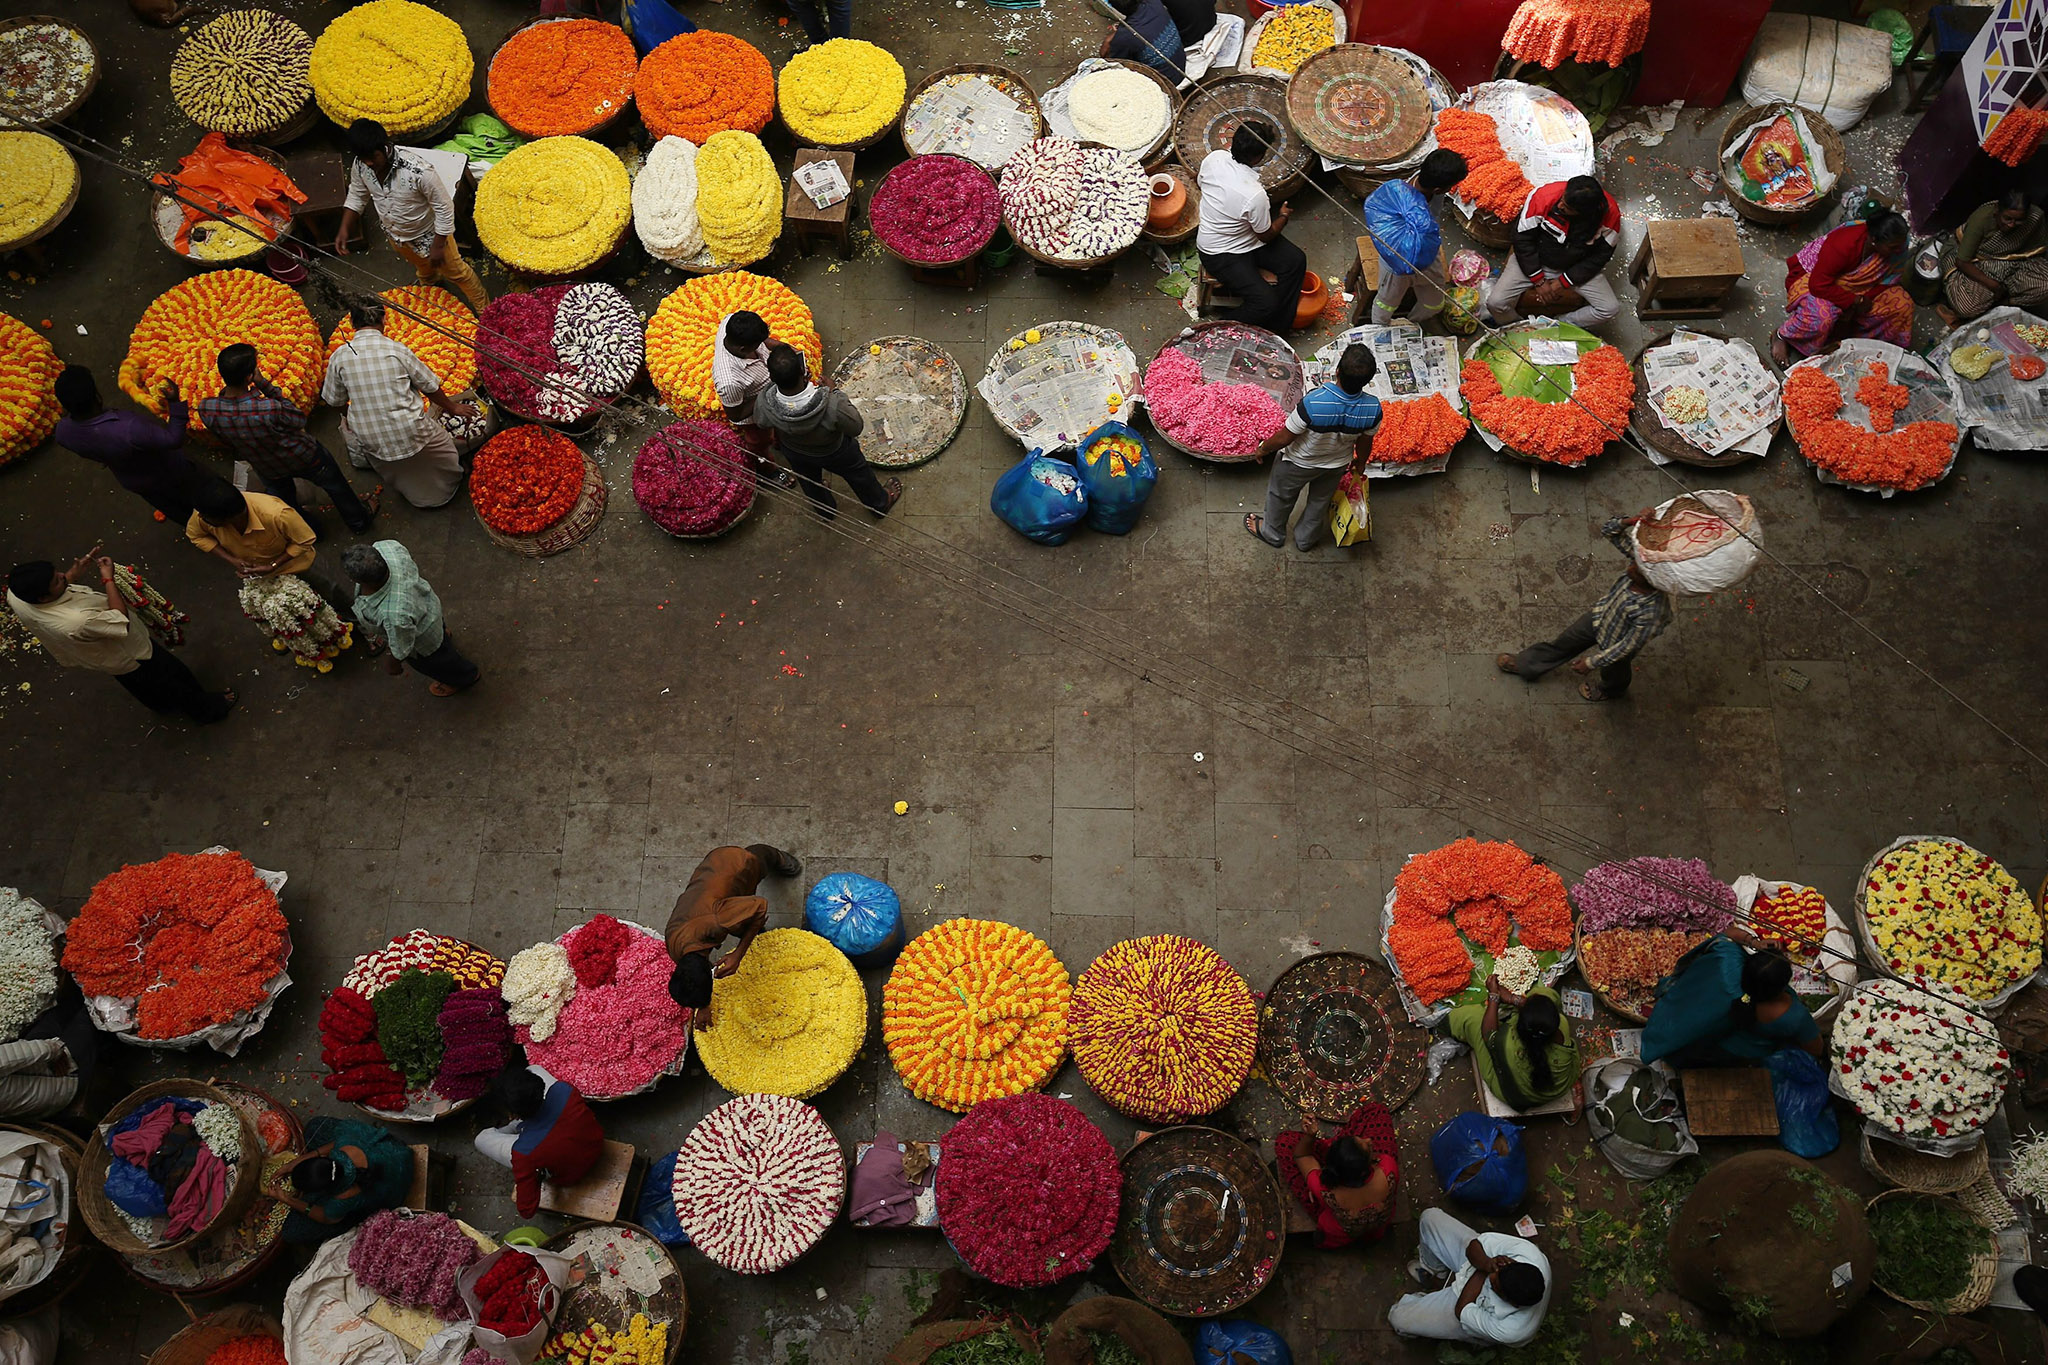 Areial view of the flowermarket at the city market in Bangalore, India  24  November 2016. Indian business is reportedly affected due to lack of Indian currency notes. Indian Prime Minister Narendra Modi announced the elimination of the 500 and 1,000 rupee bills at midnight on 08 November, for the purpose of fighting against 'black money' (hidden assets) and corruption in the country. The decision sparked protests, while storekeepers complained about dwindling sales because many citizens lack the cash to buy the most basic products, as queues get longer at ATMs and banks.  EPA/JAGADEESH NV